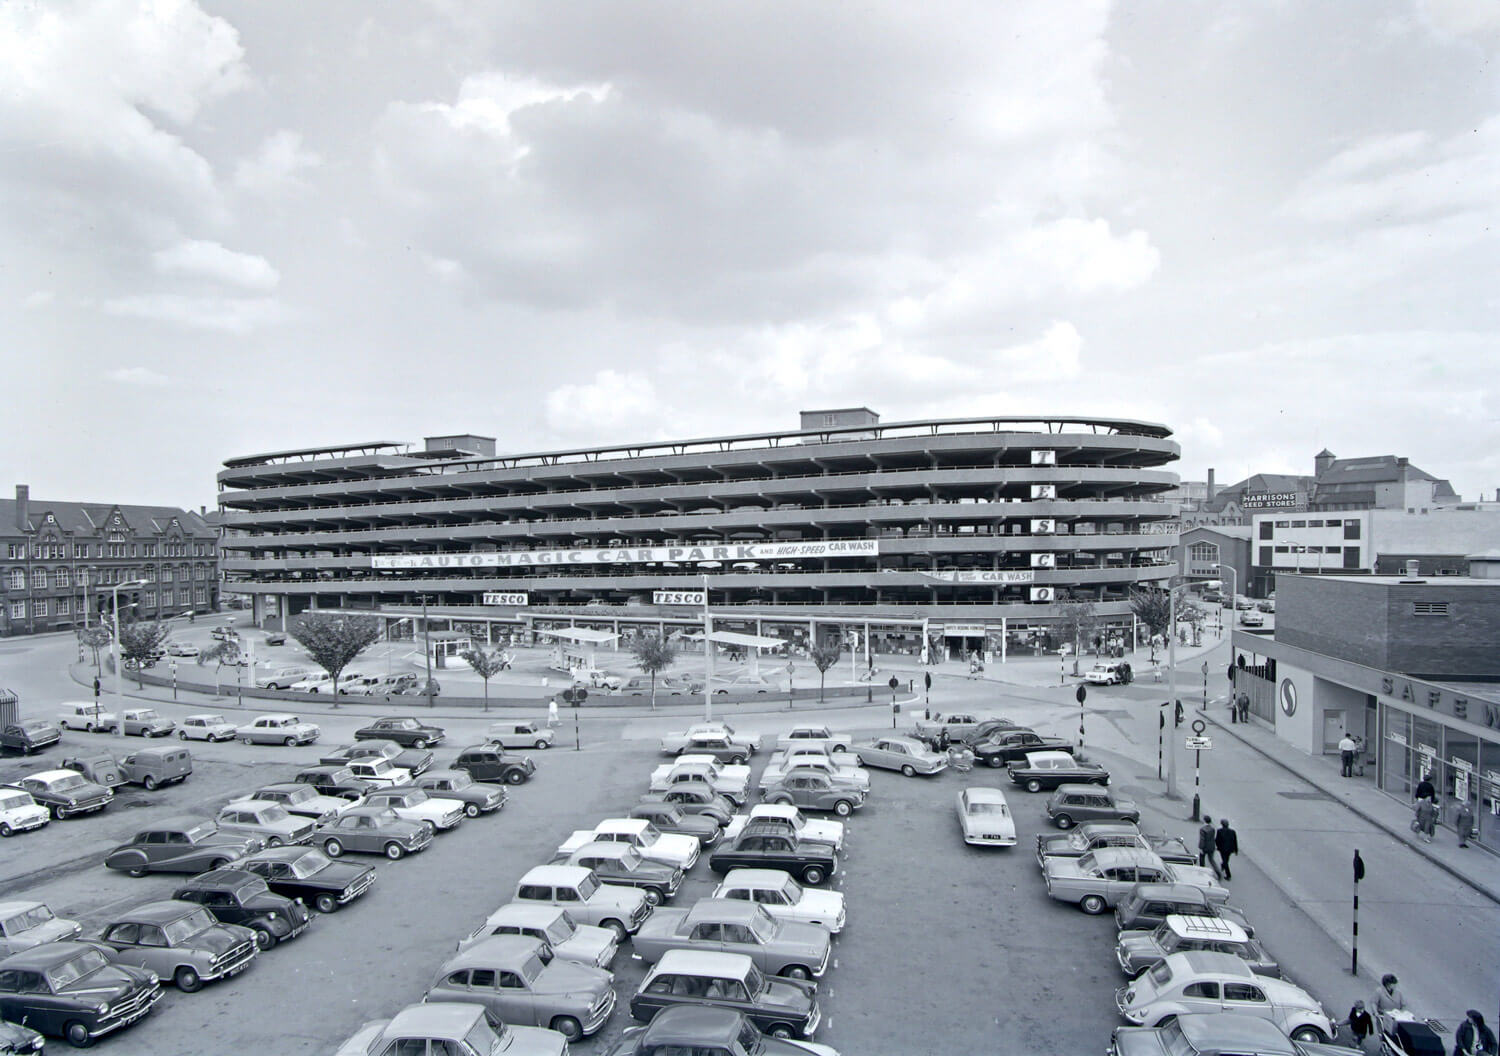 Auto-Magic Car park in its heyday, 1960s - Leicestershire Record Office